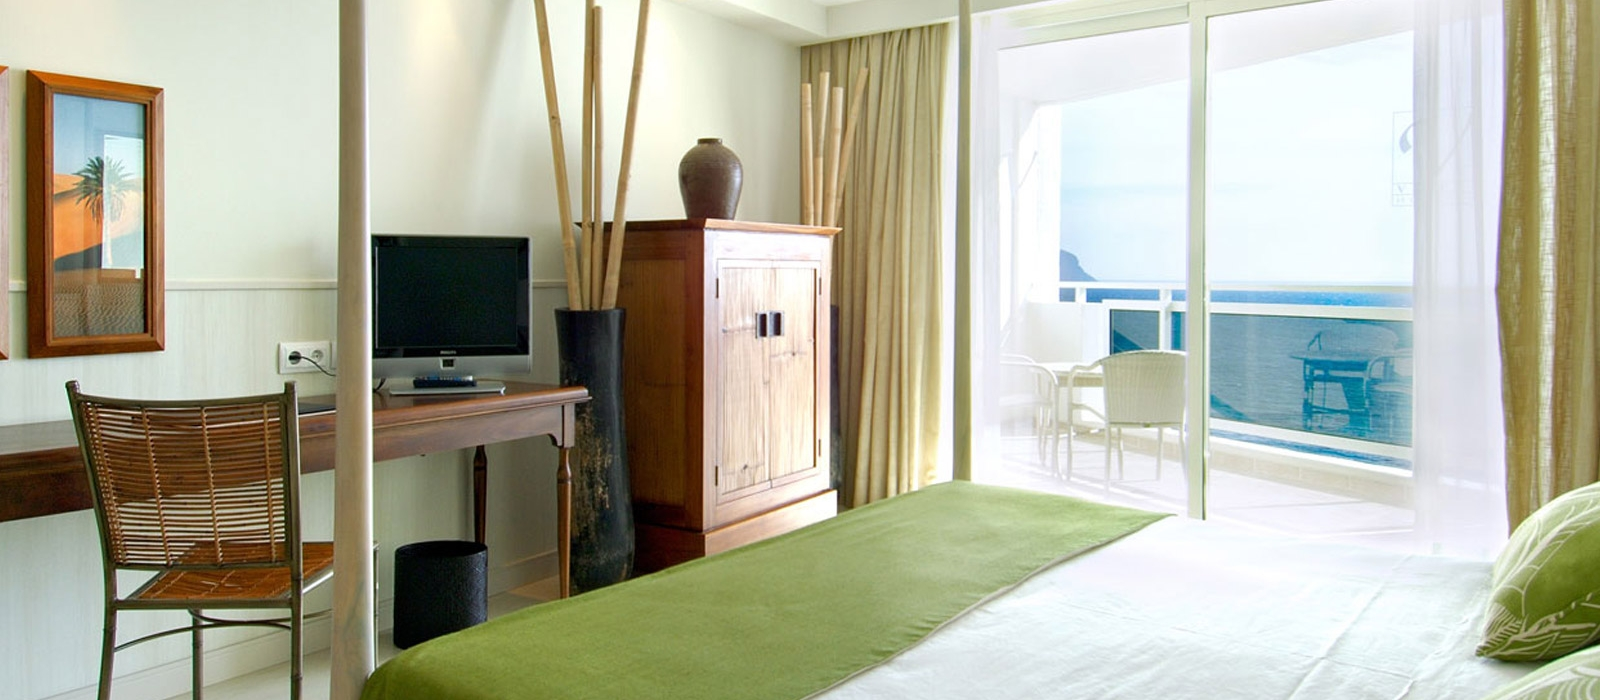 Junior Suite. Hotel Tenerife Golf - Vincci Hoteles